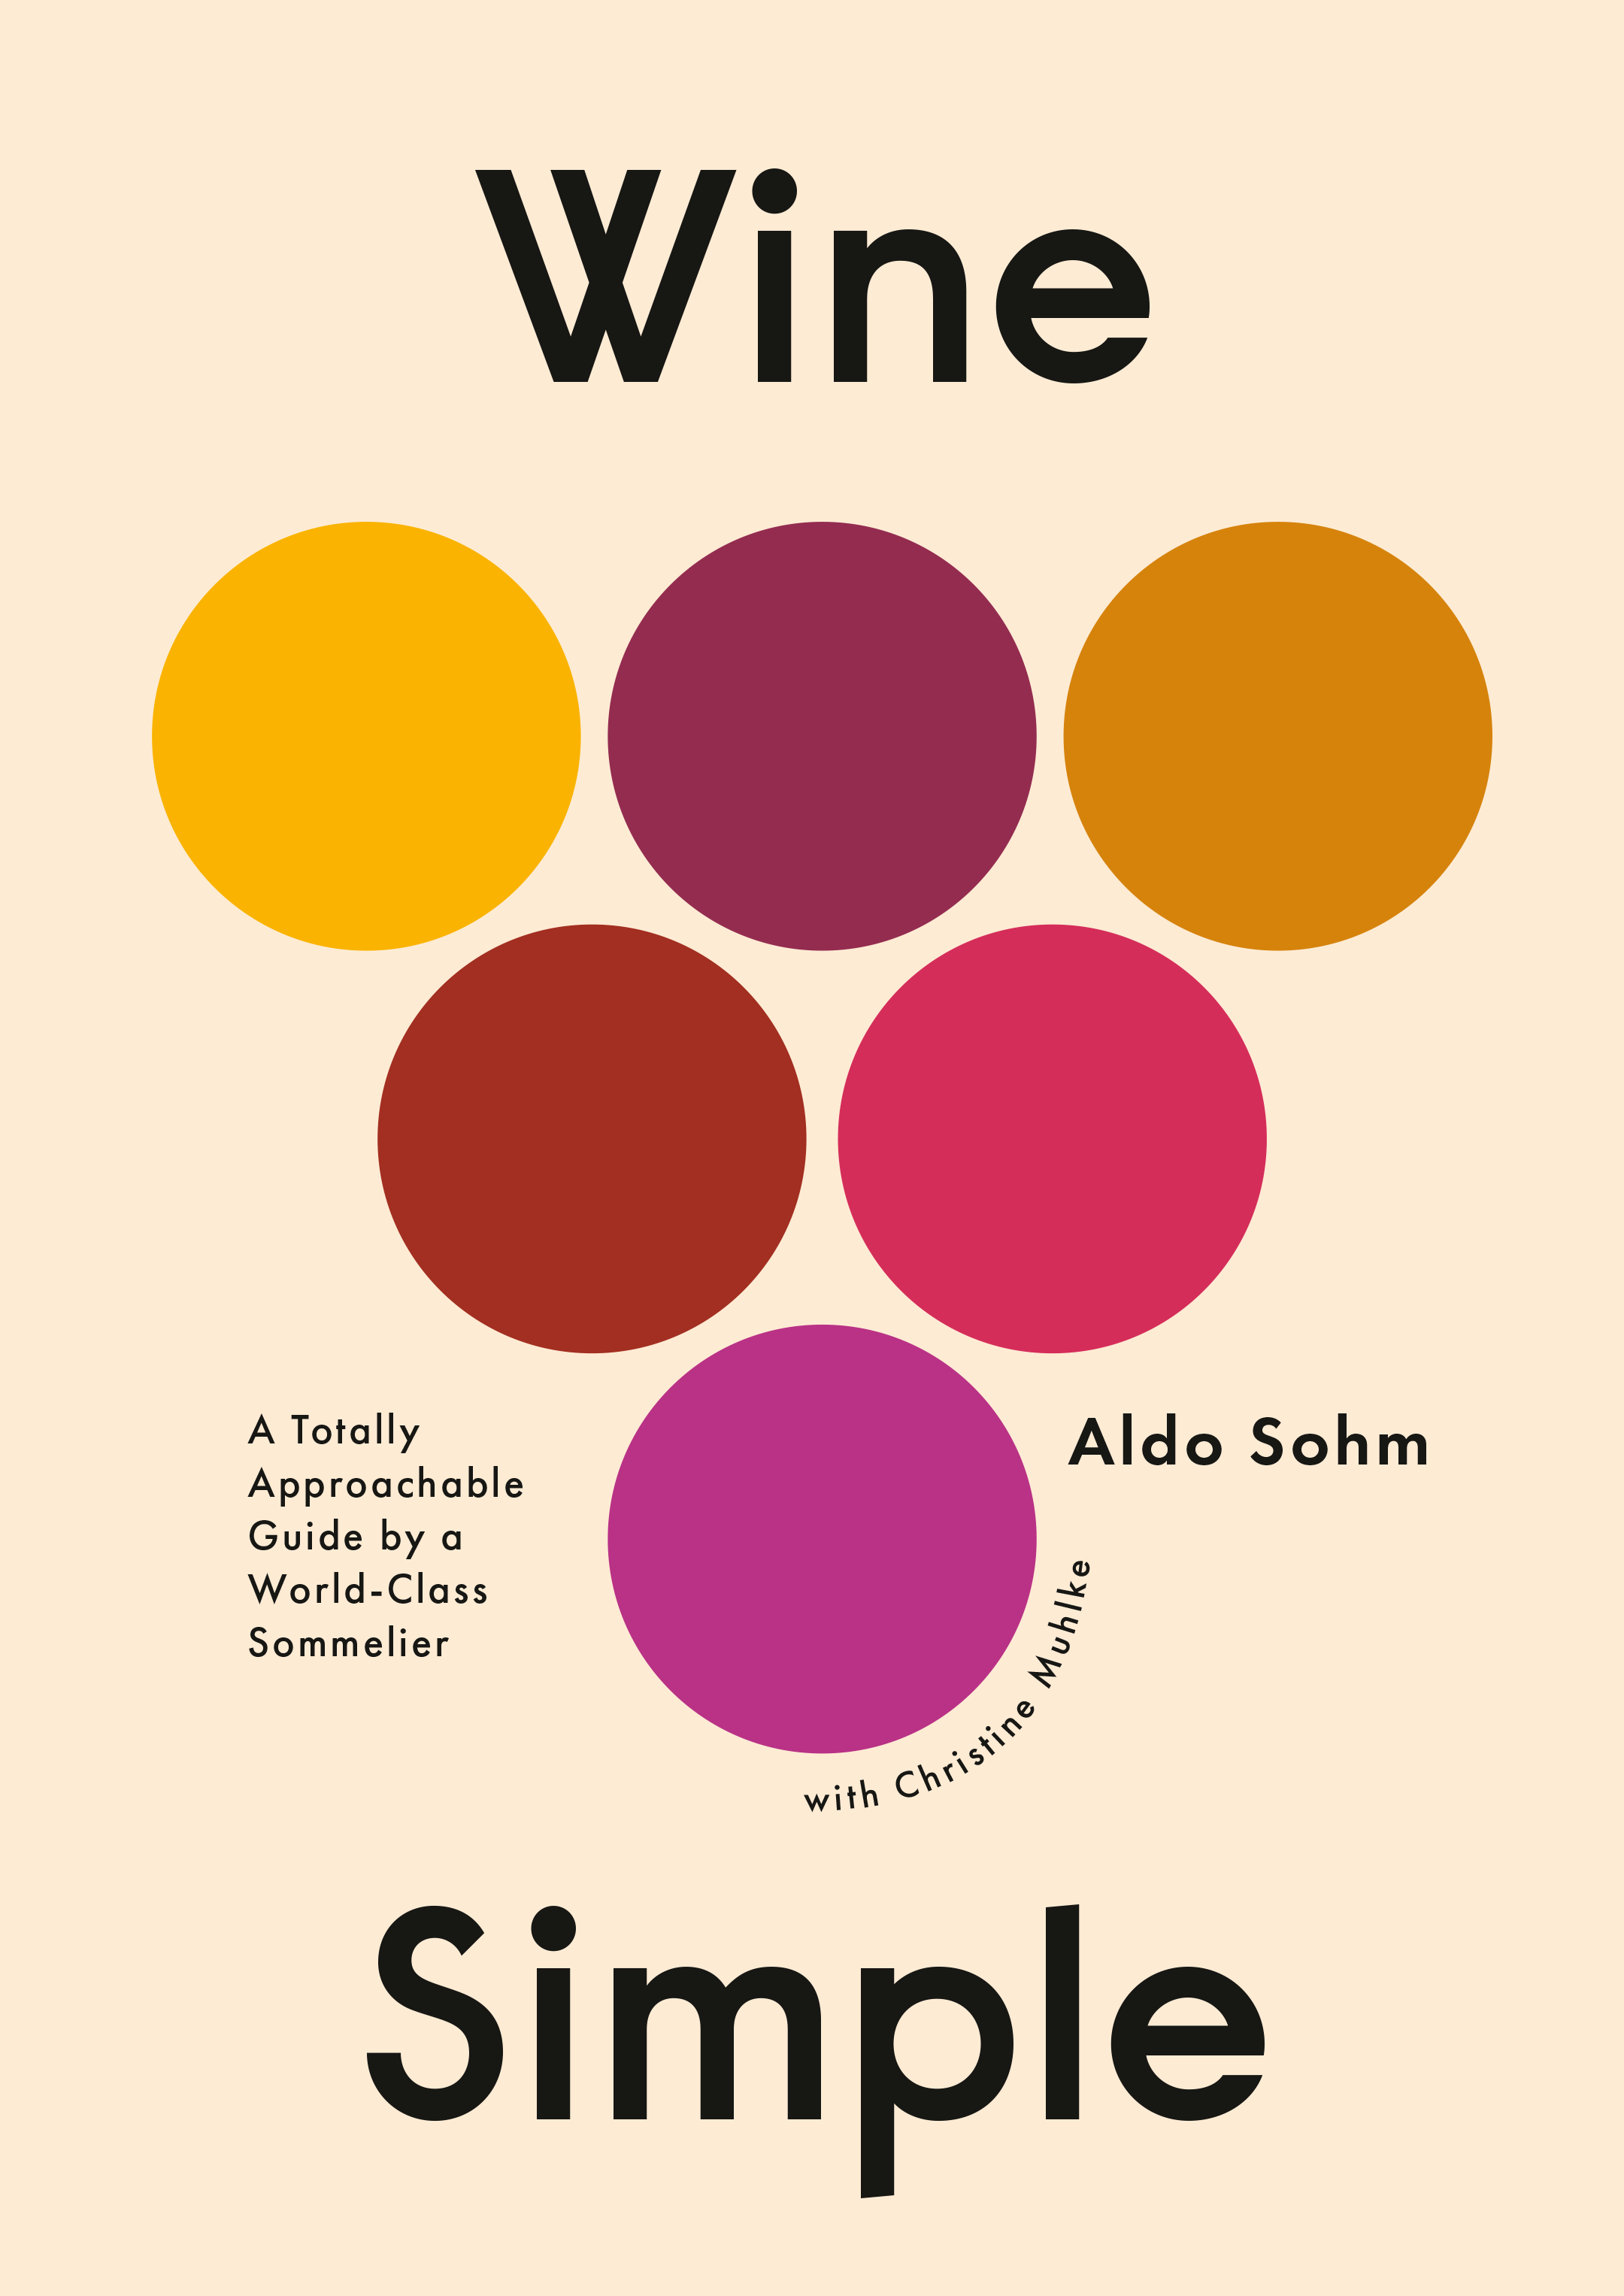 Cover of Wine Simple: A Totally Approachable Guide from A World-Class Sommelier